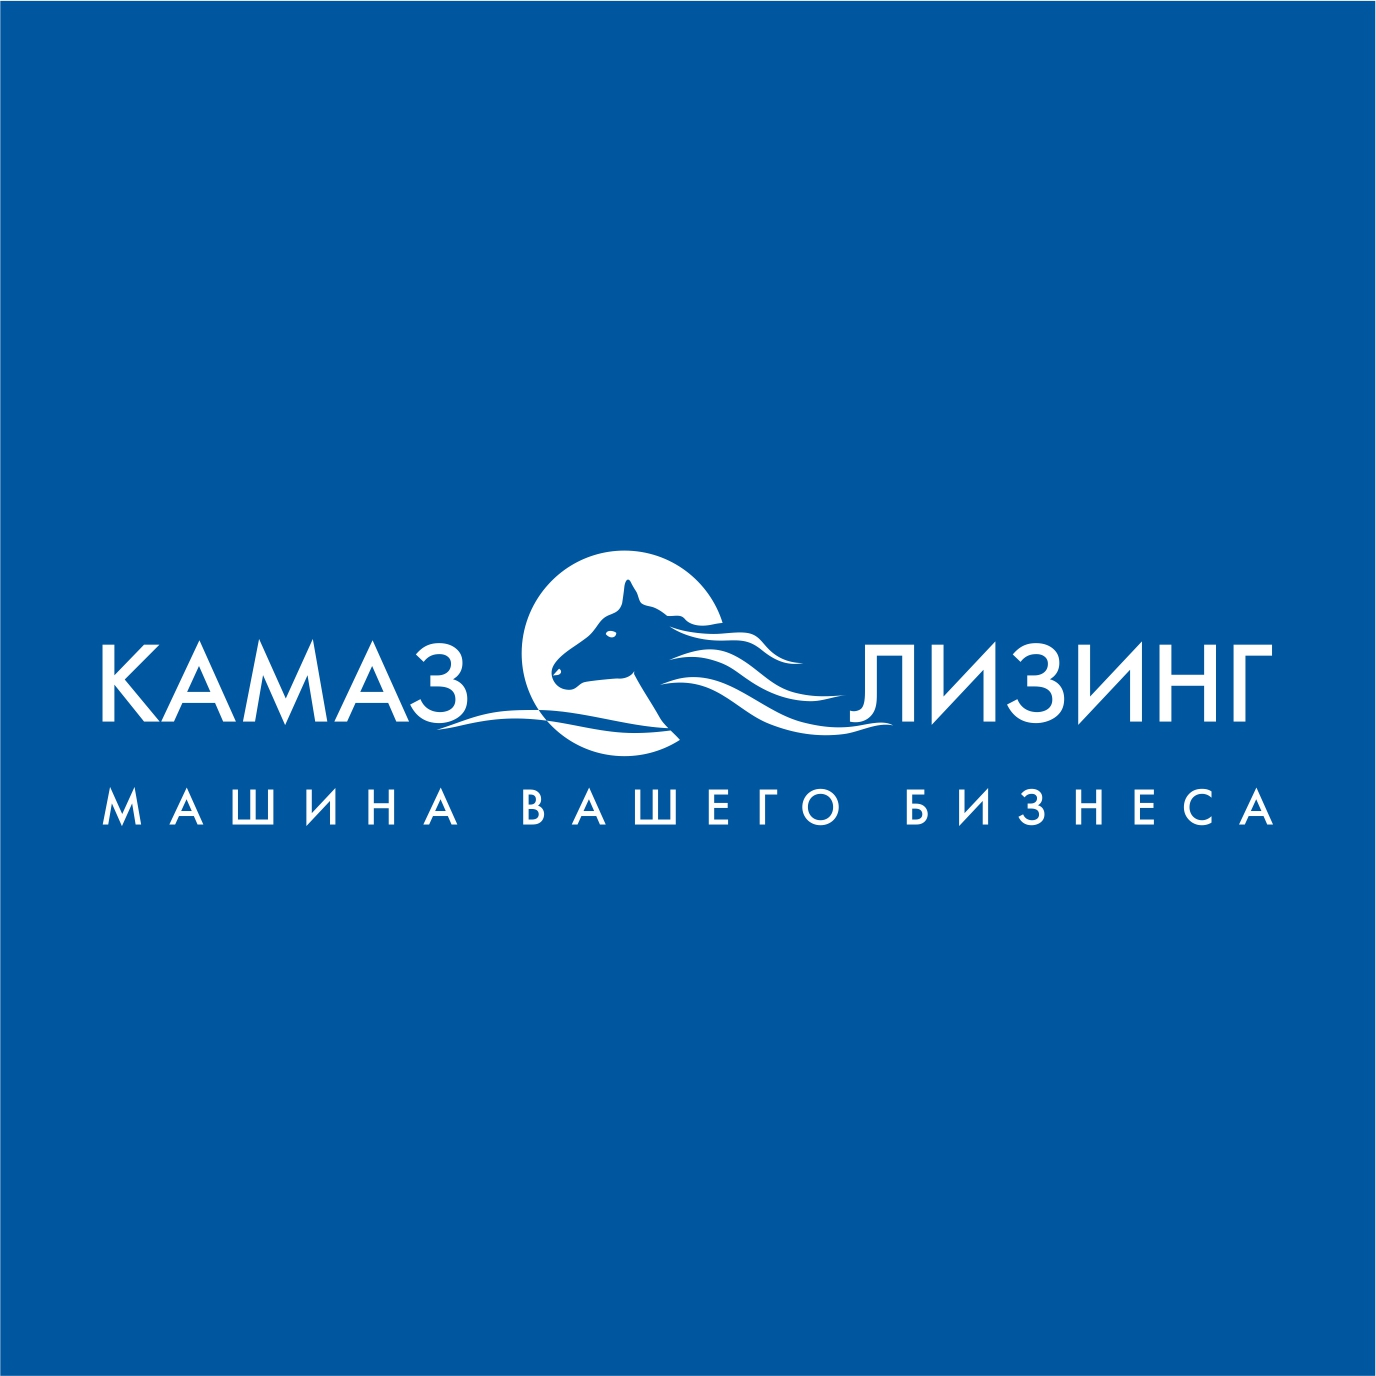 https://kamaz.ru/upload/iblock/350/350f7dcac62fe72632cd0c94e7630a44.jpg